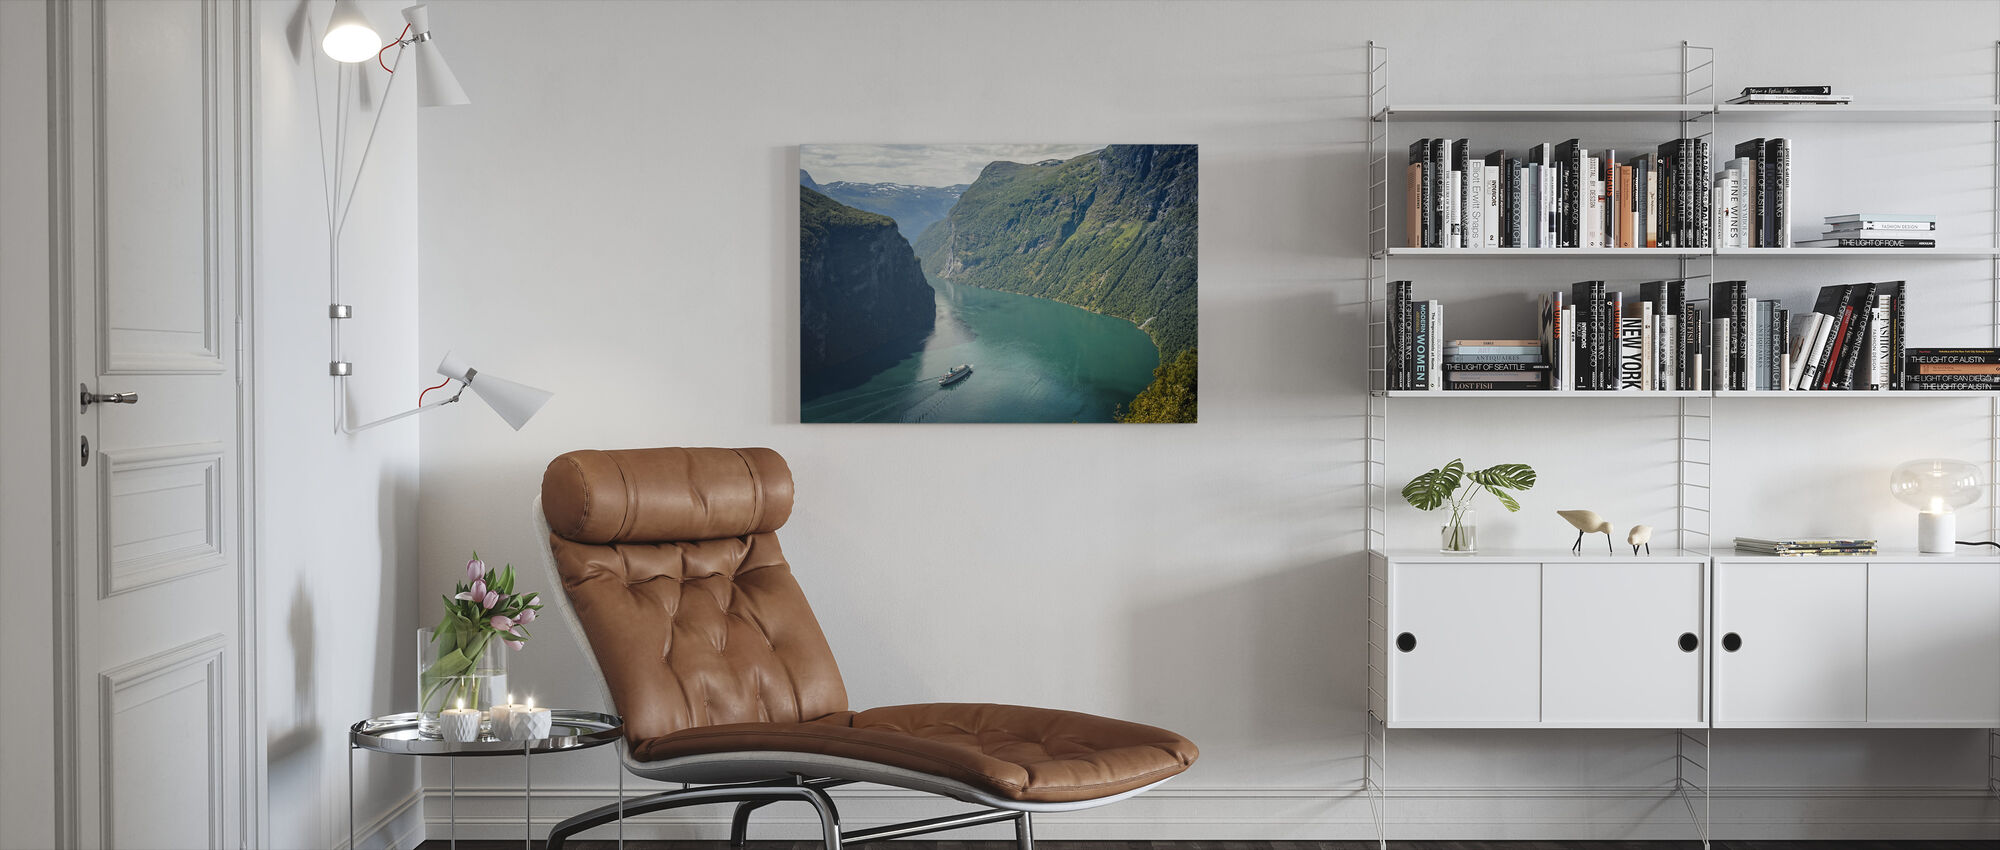 Green Water of Geirangerfjord, Norway - Canvas print - Living Room